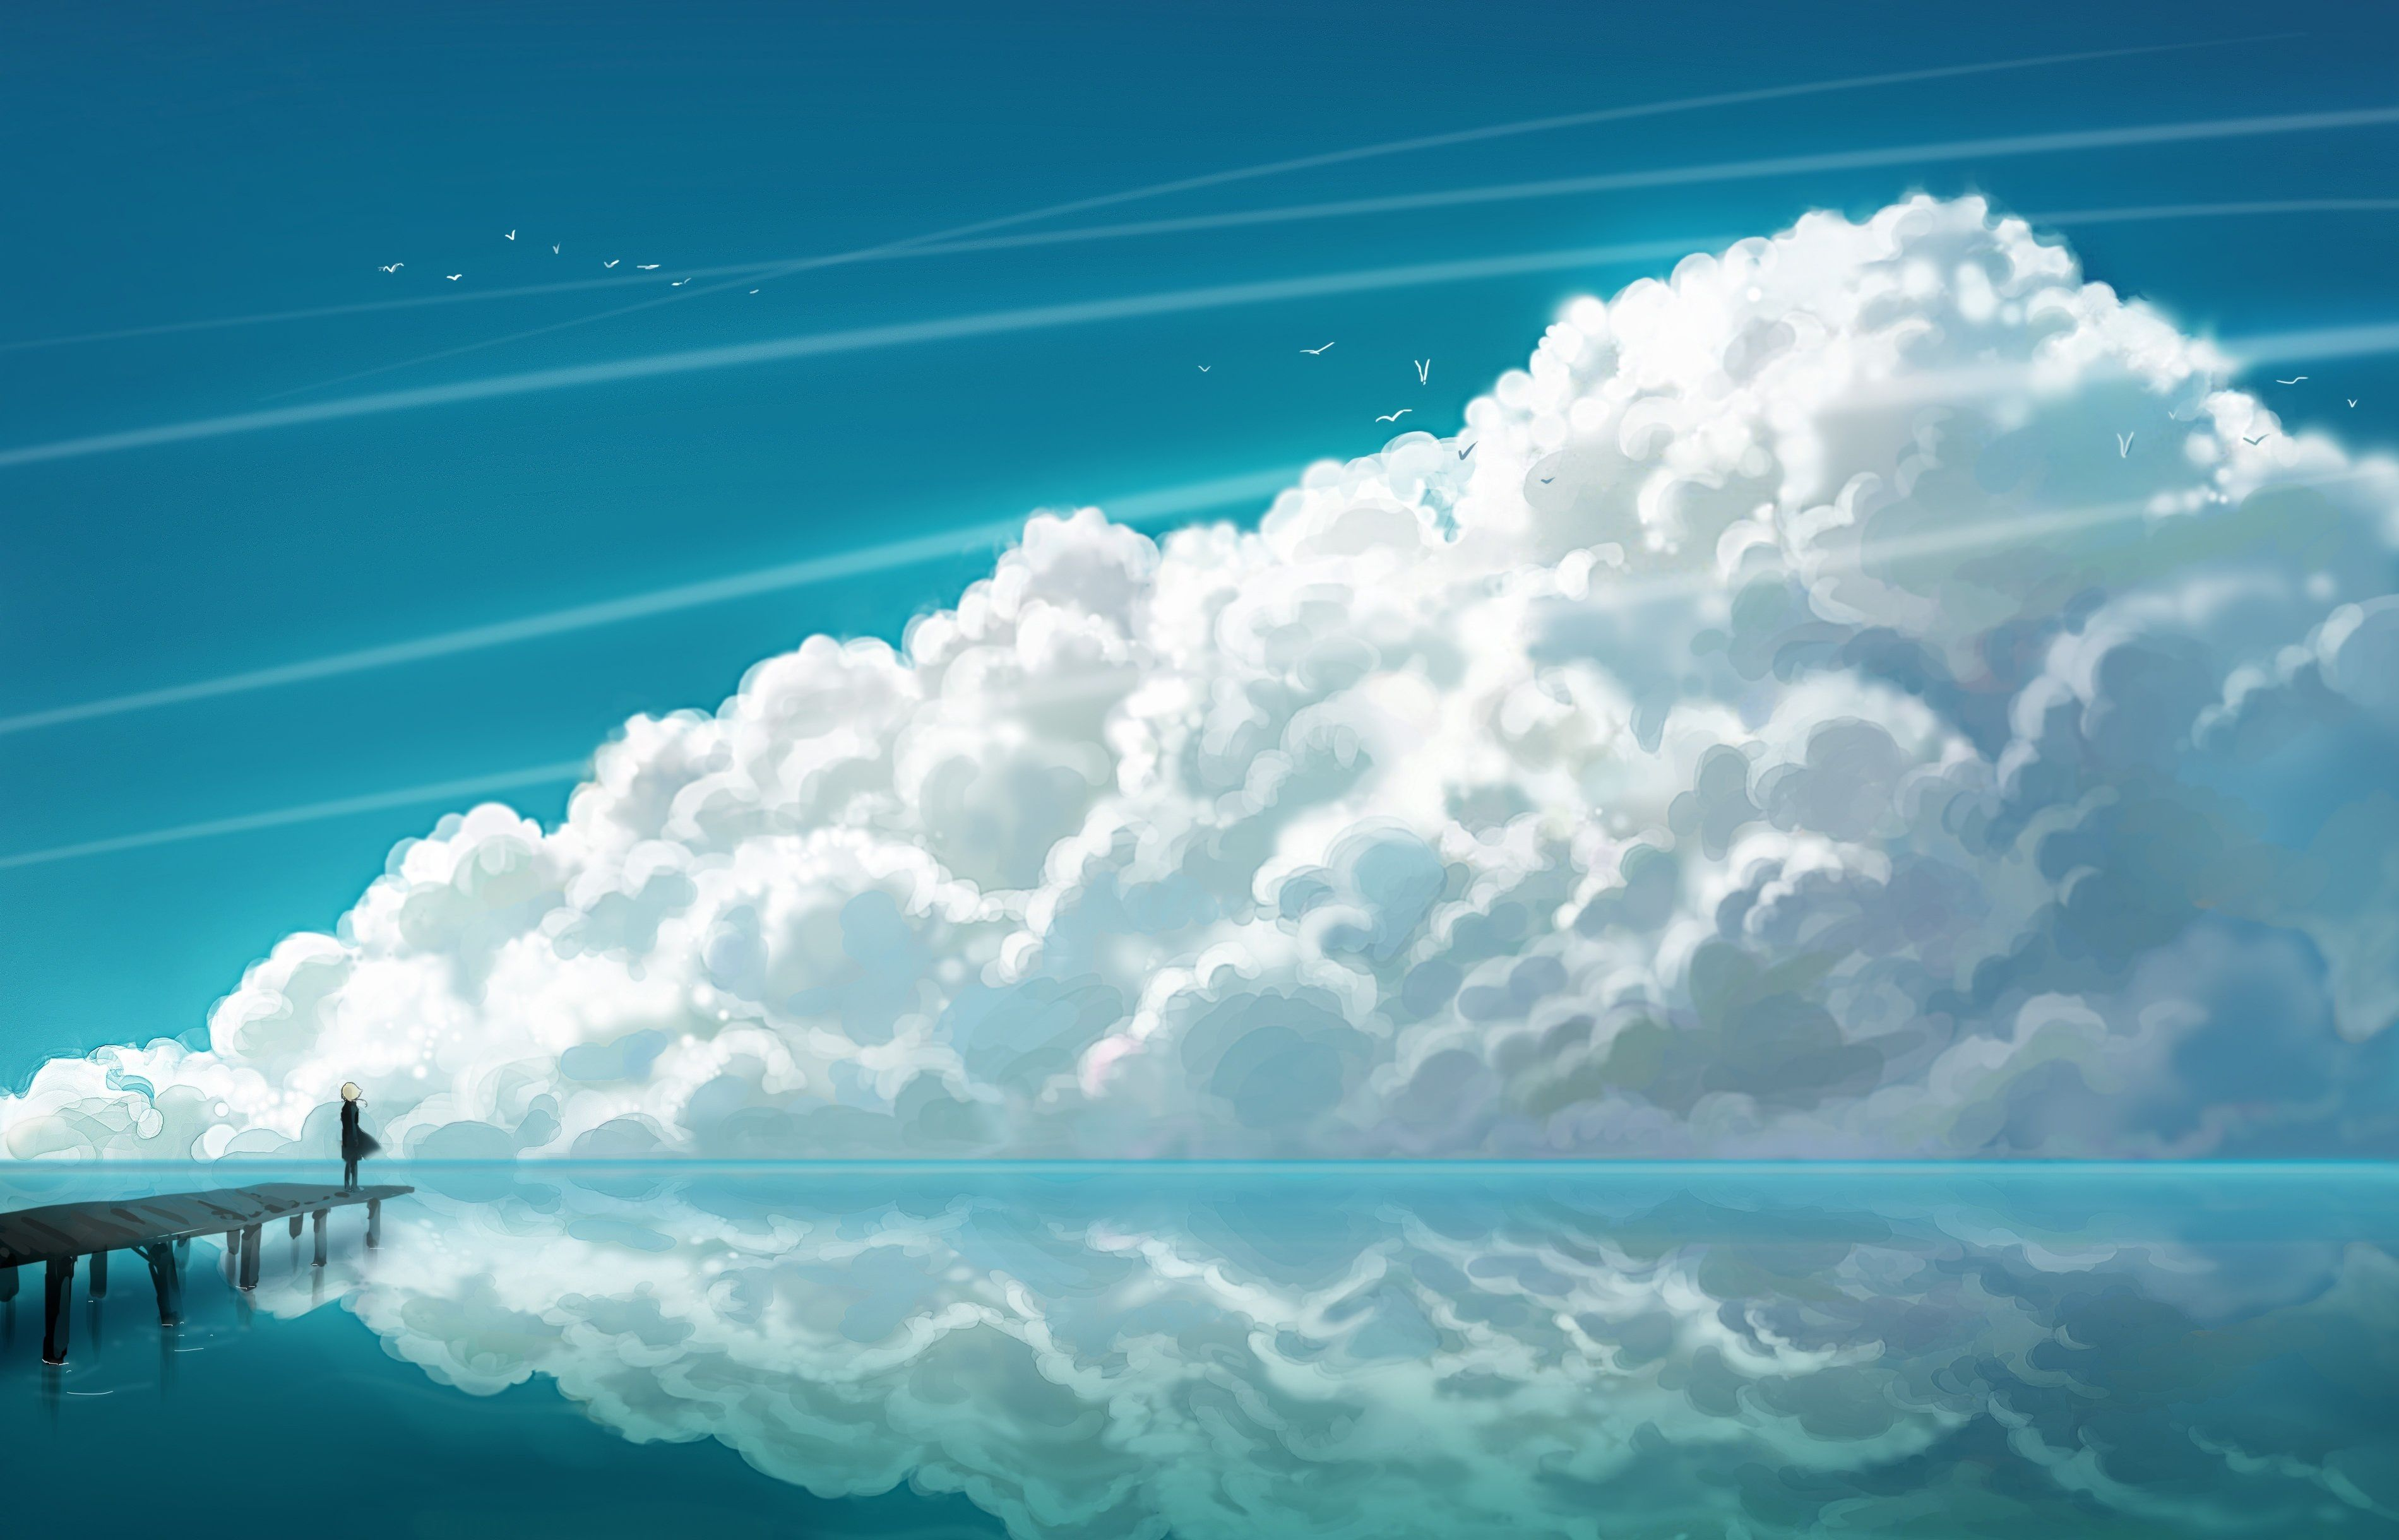 Anime Landscape Wallpapers Top Free Anime Landscape Backgrounds Wallpaperaccess